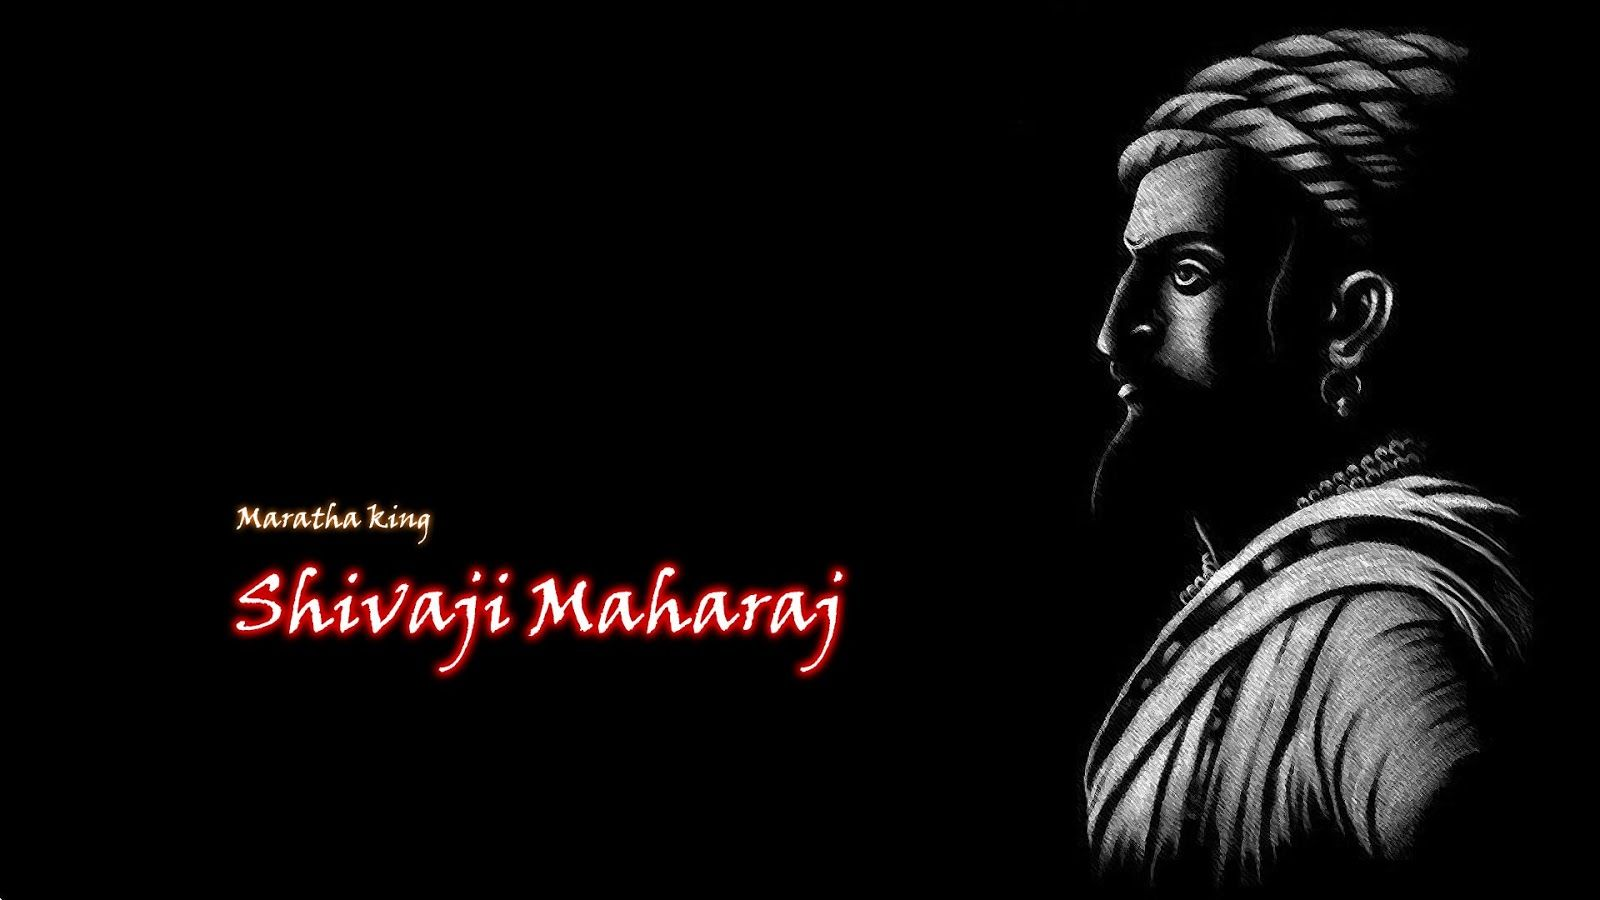 Shivaji Maharaj 1920x1080 Jpg 1600 900 Shivaji Maharaj Hd Wallpaper Background Hd Wallpaper Hd Wallpaper